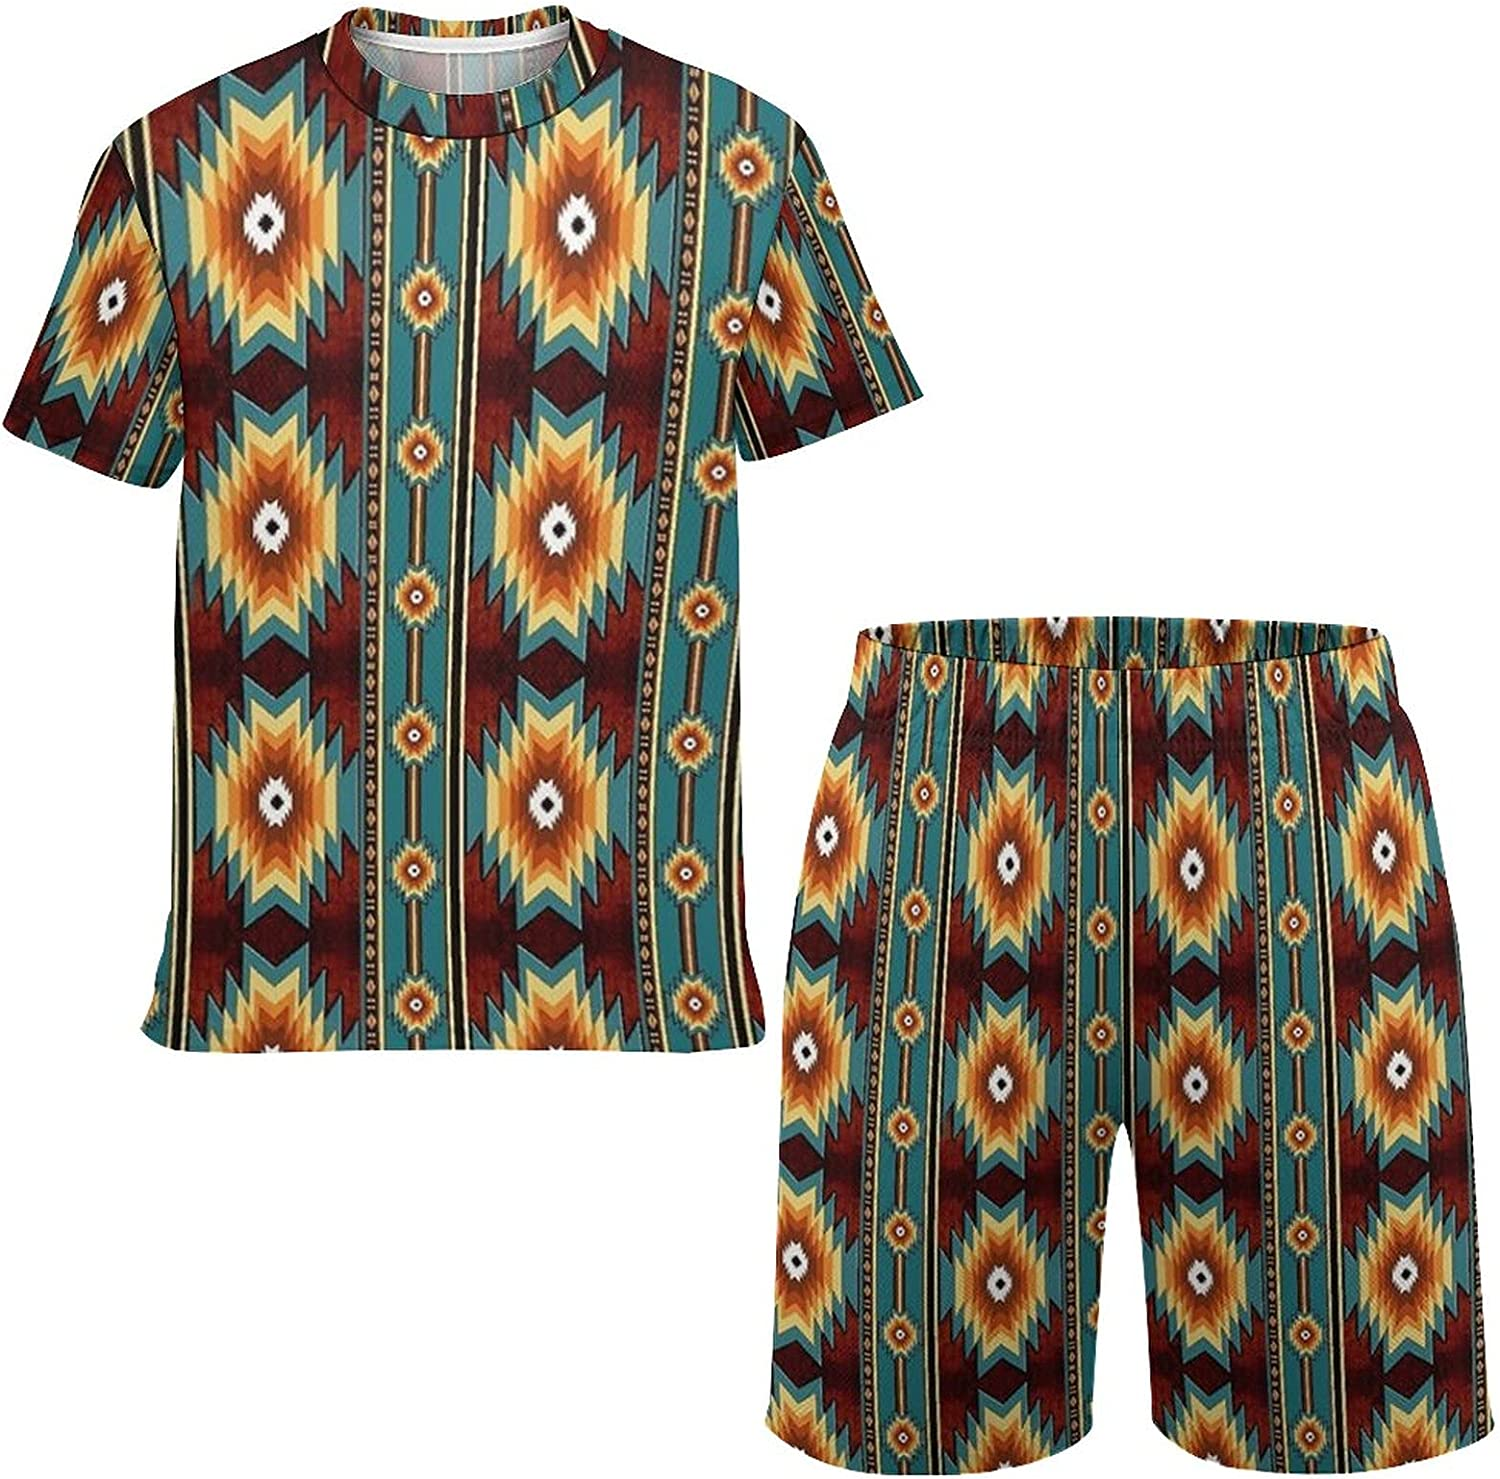 NiYoung Little Boys/Girls T-Shirt and Shorts Sets Ethnic Navajo Native American Southwestern Tracksuit Outfits Playwear Hoodies Housework Clothing